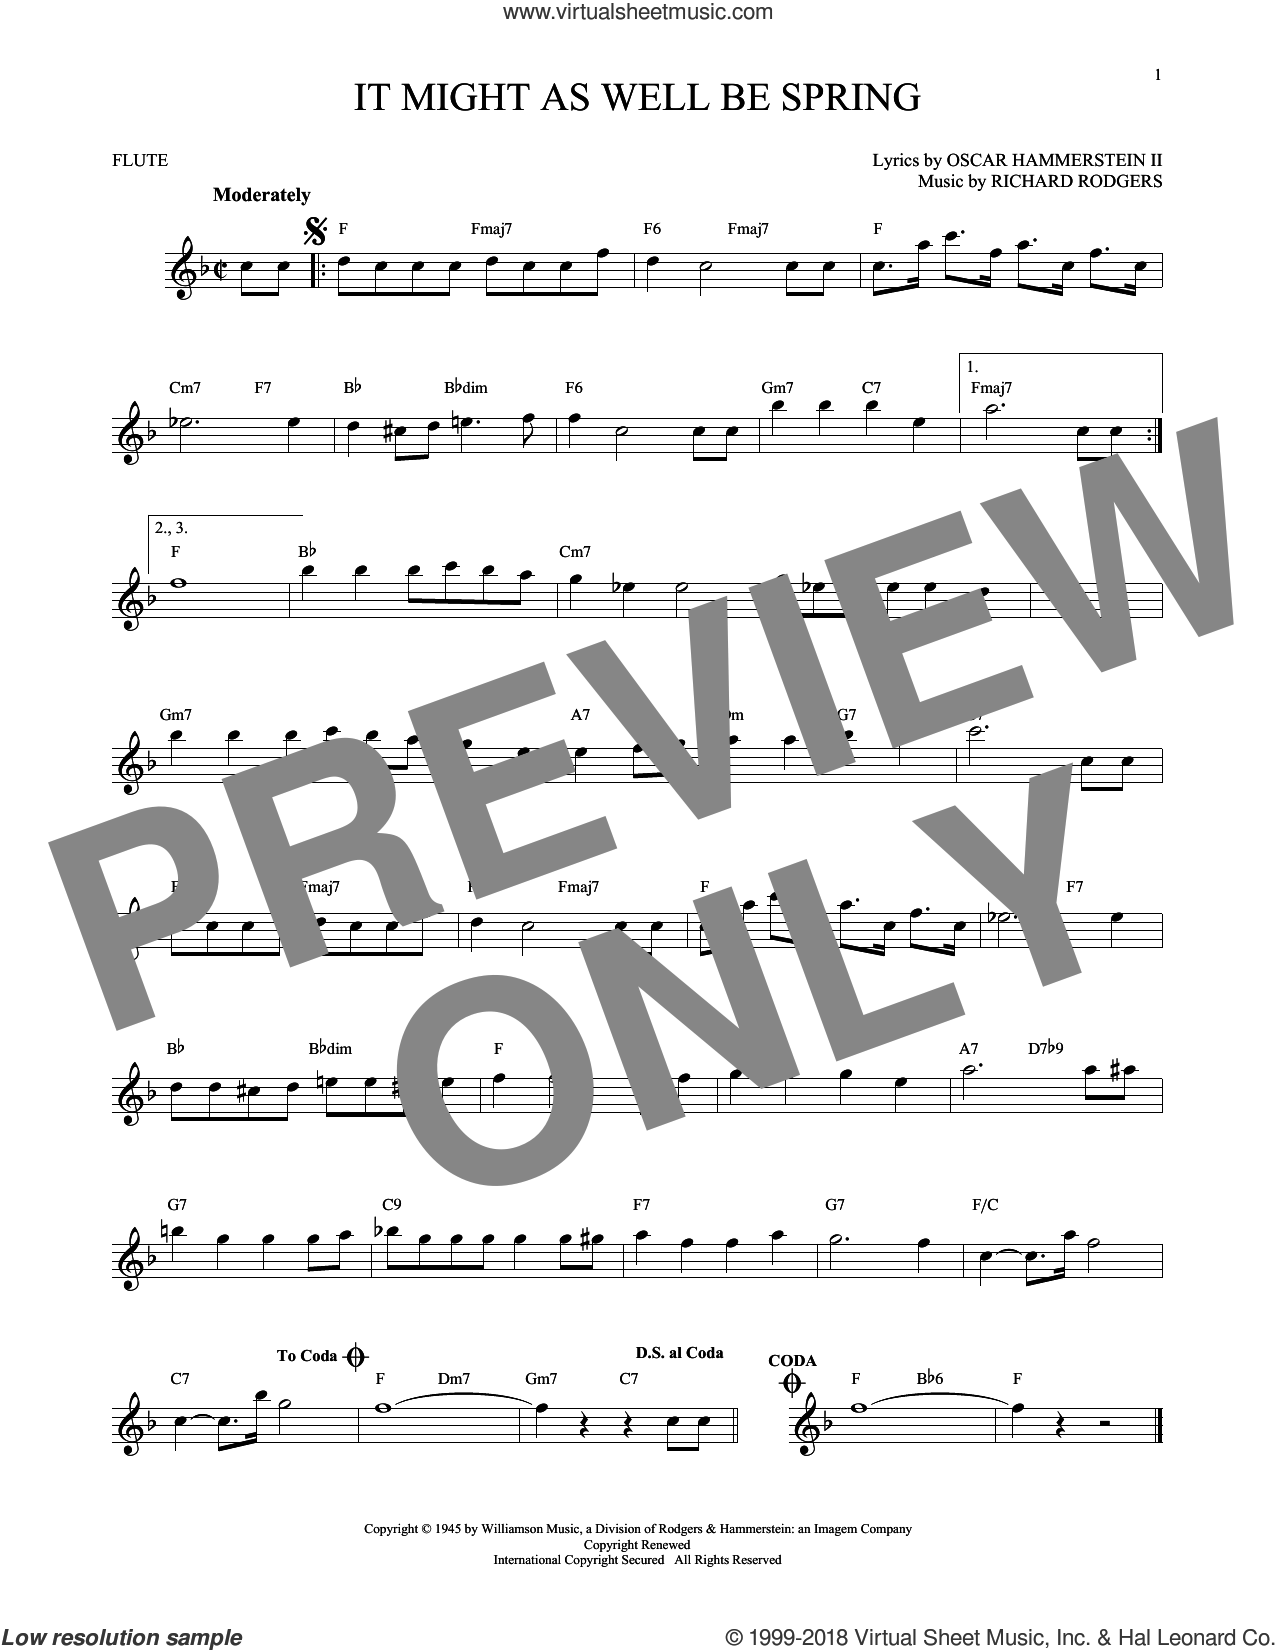 It Might As Well Be Spring sheet music for flute solo by Rodgers & Hammerstein, Oscar II Hammerstein and Richard Rodgers, intermediate skill level